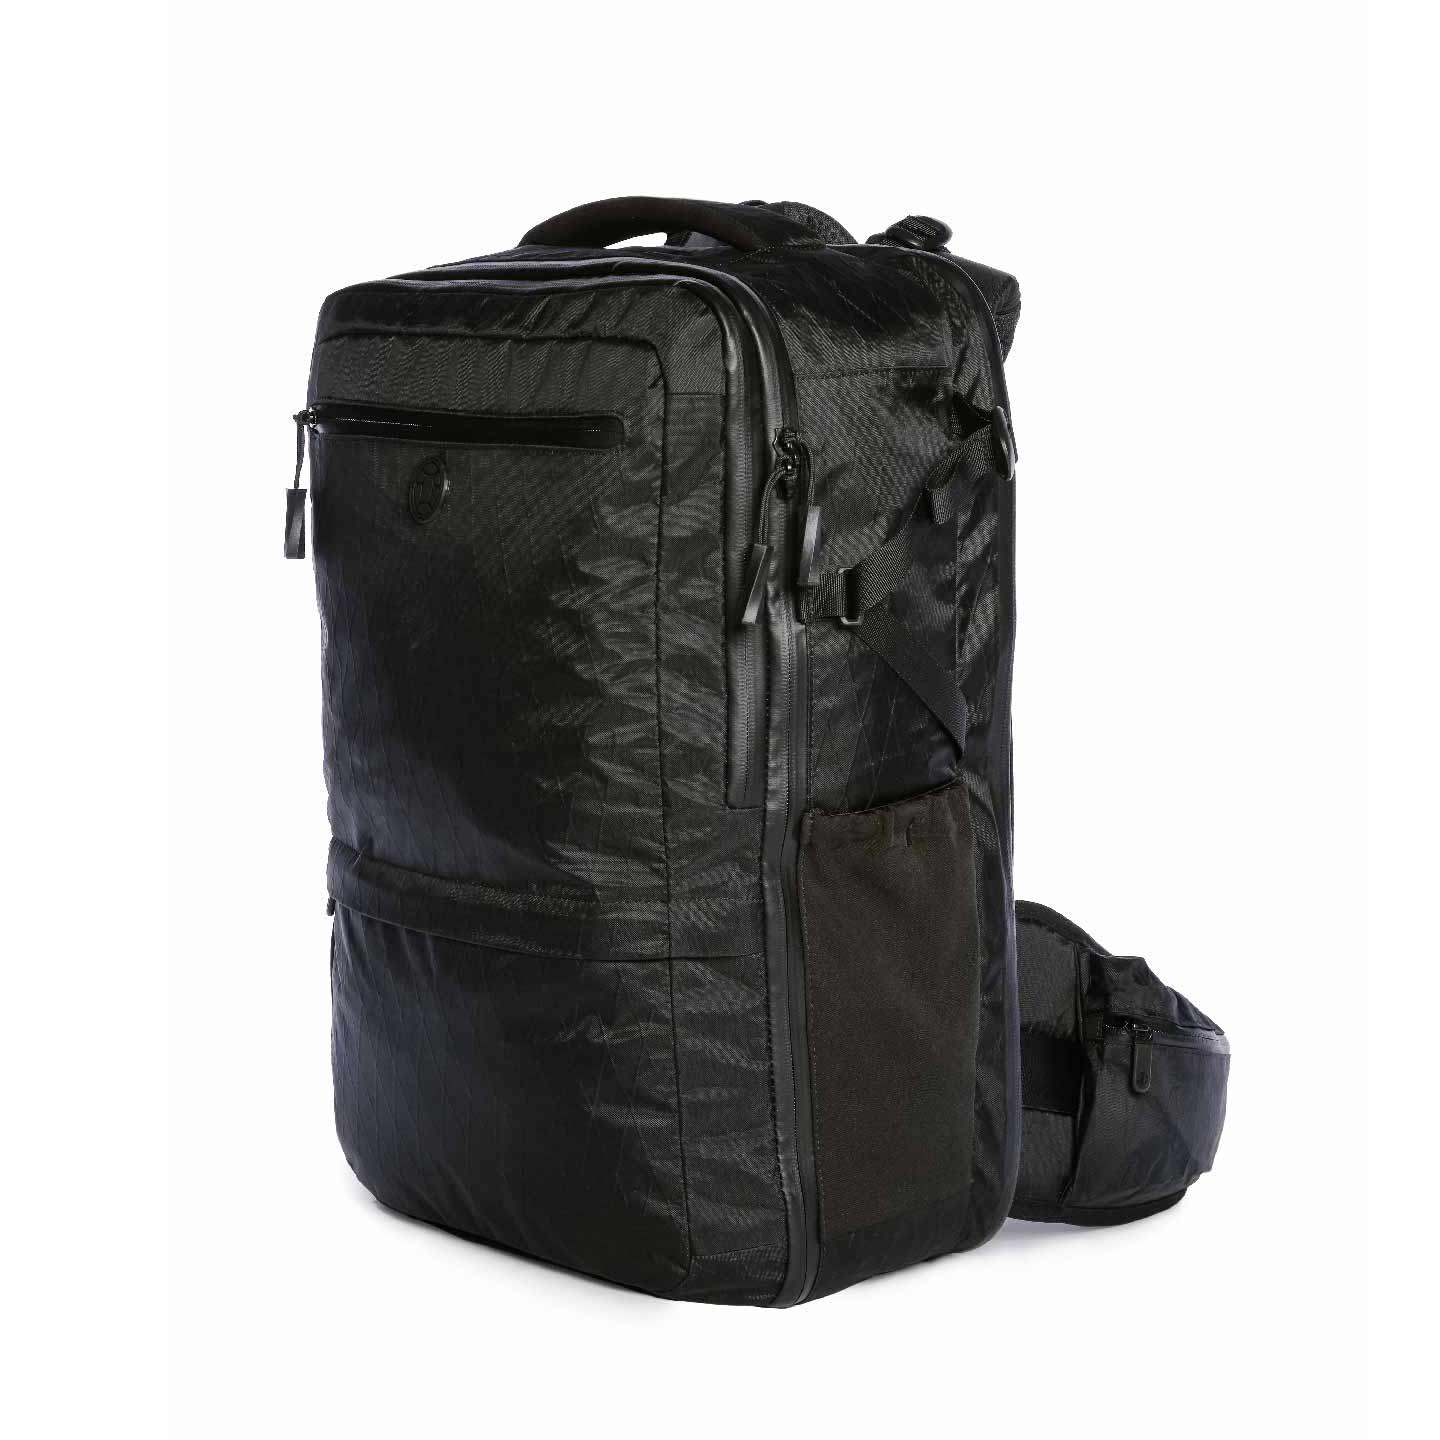 The Best Carry On Travel Gear  A Guide for 2019 - Tortuga Backpacks Blog d2205cbd62793